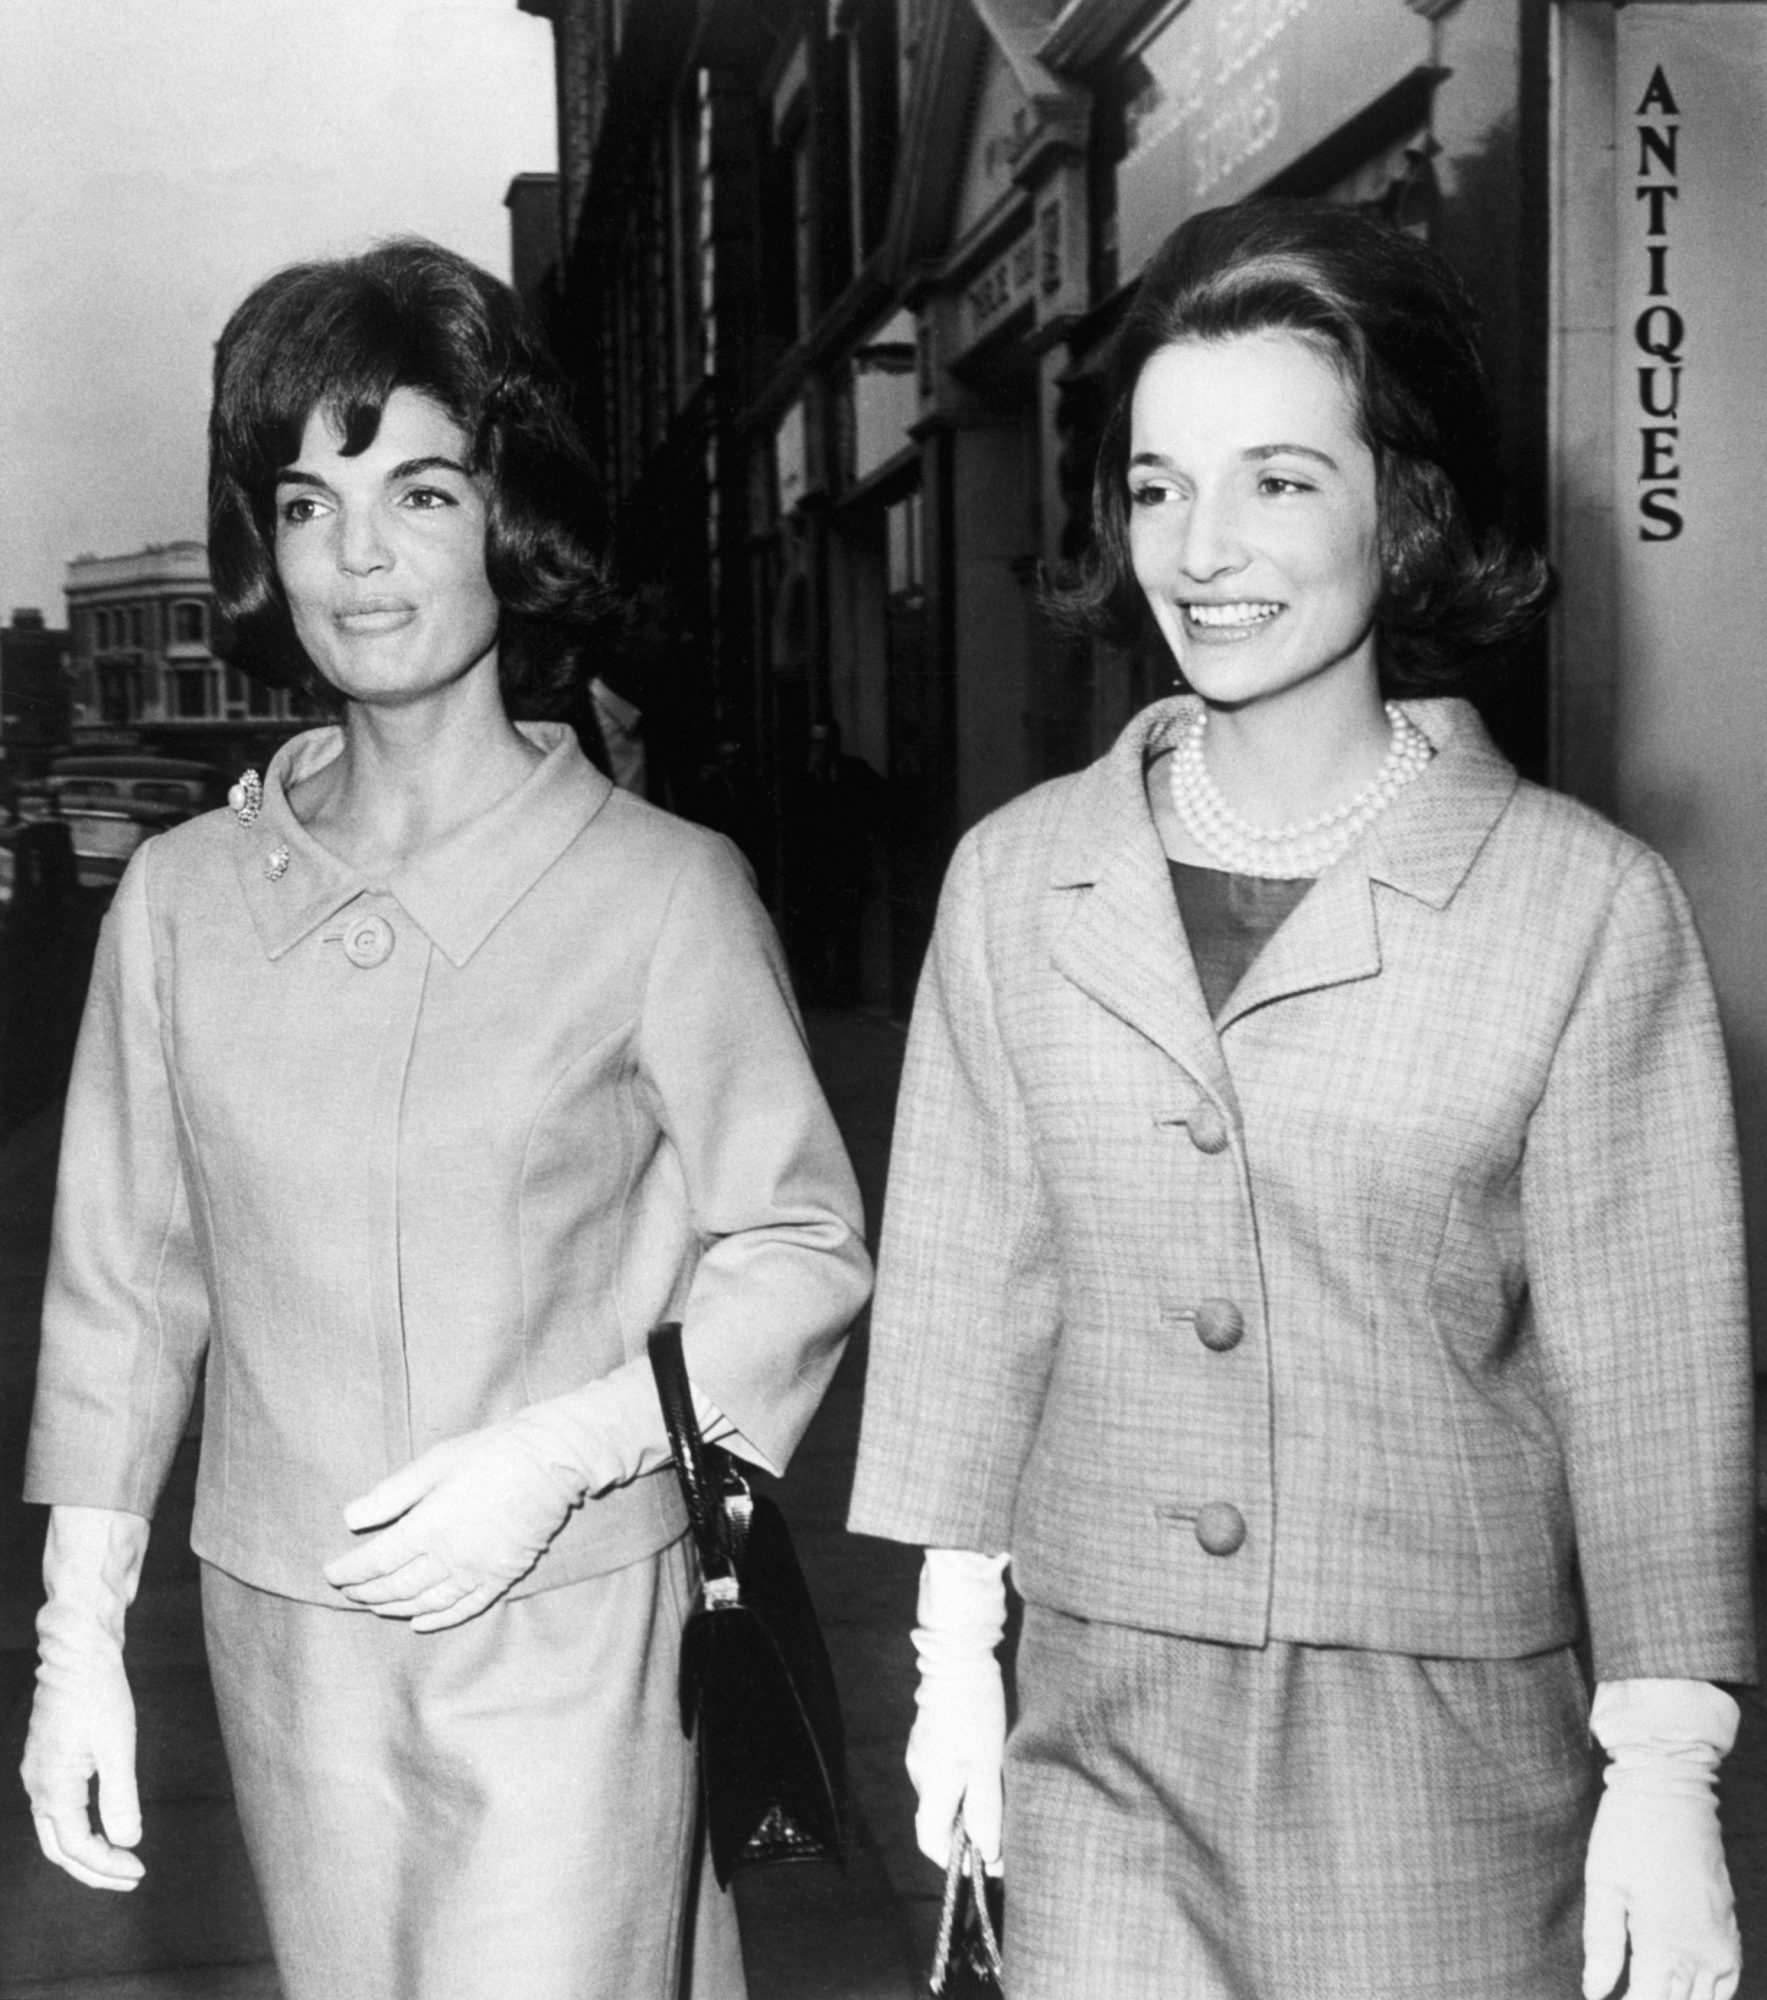 Jacqueline Kennedy and Lee Radziwill